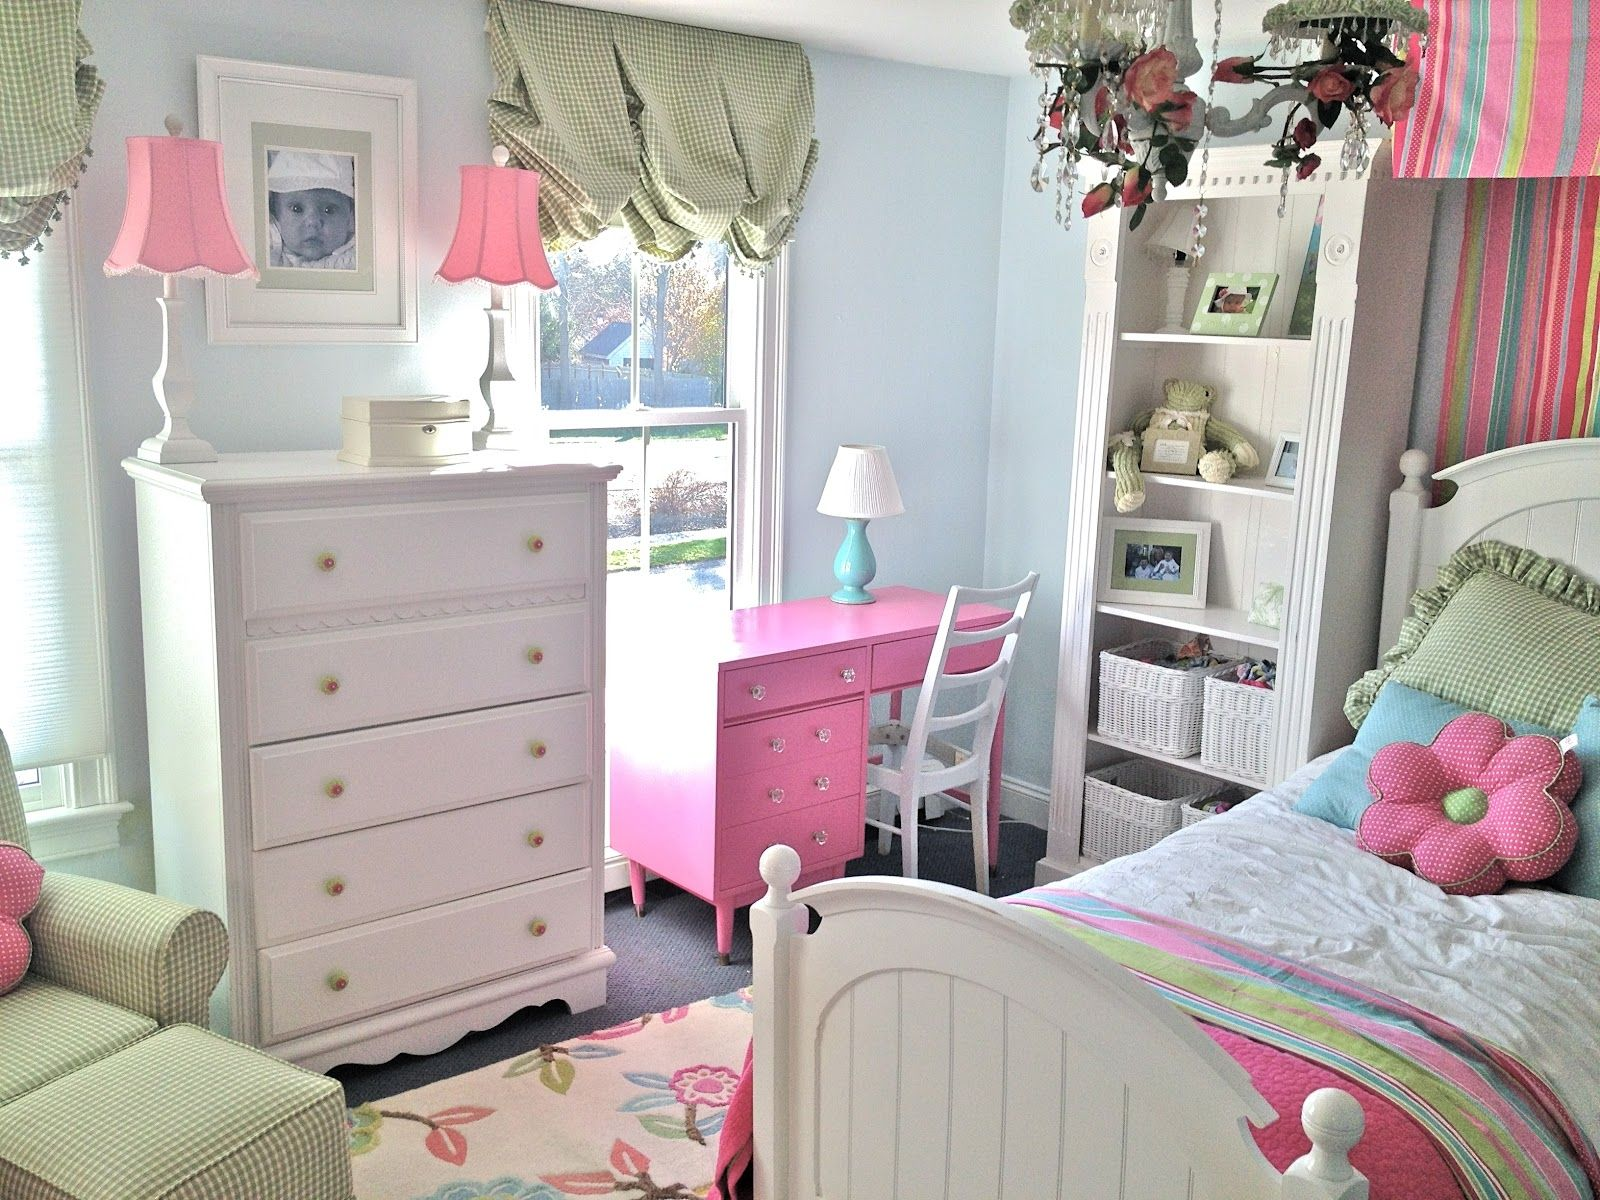 Cute Apartment Bedroom Ideas Ideas Painting bedroom, light blue wall paint pink desk lamp on white drawer